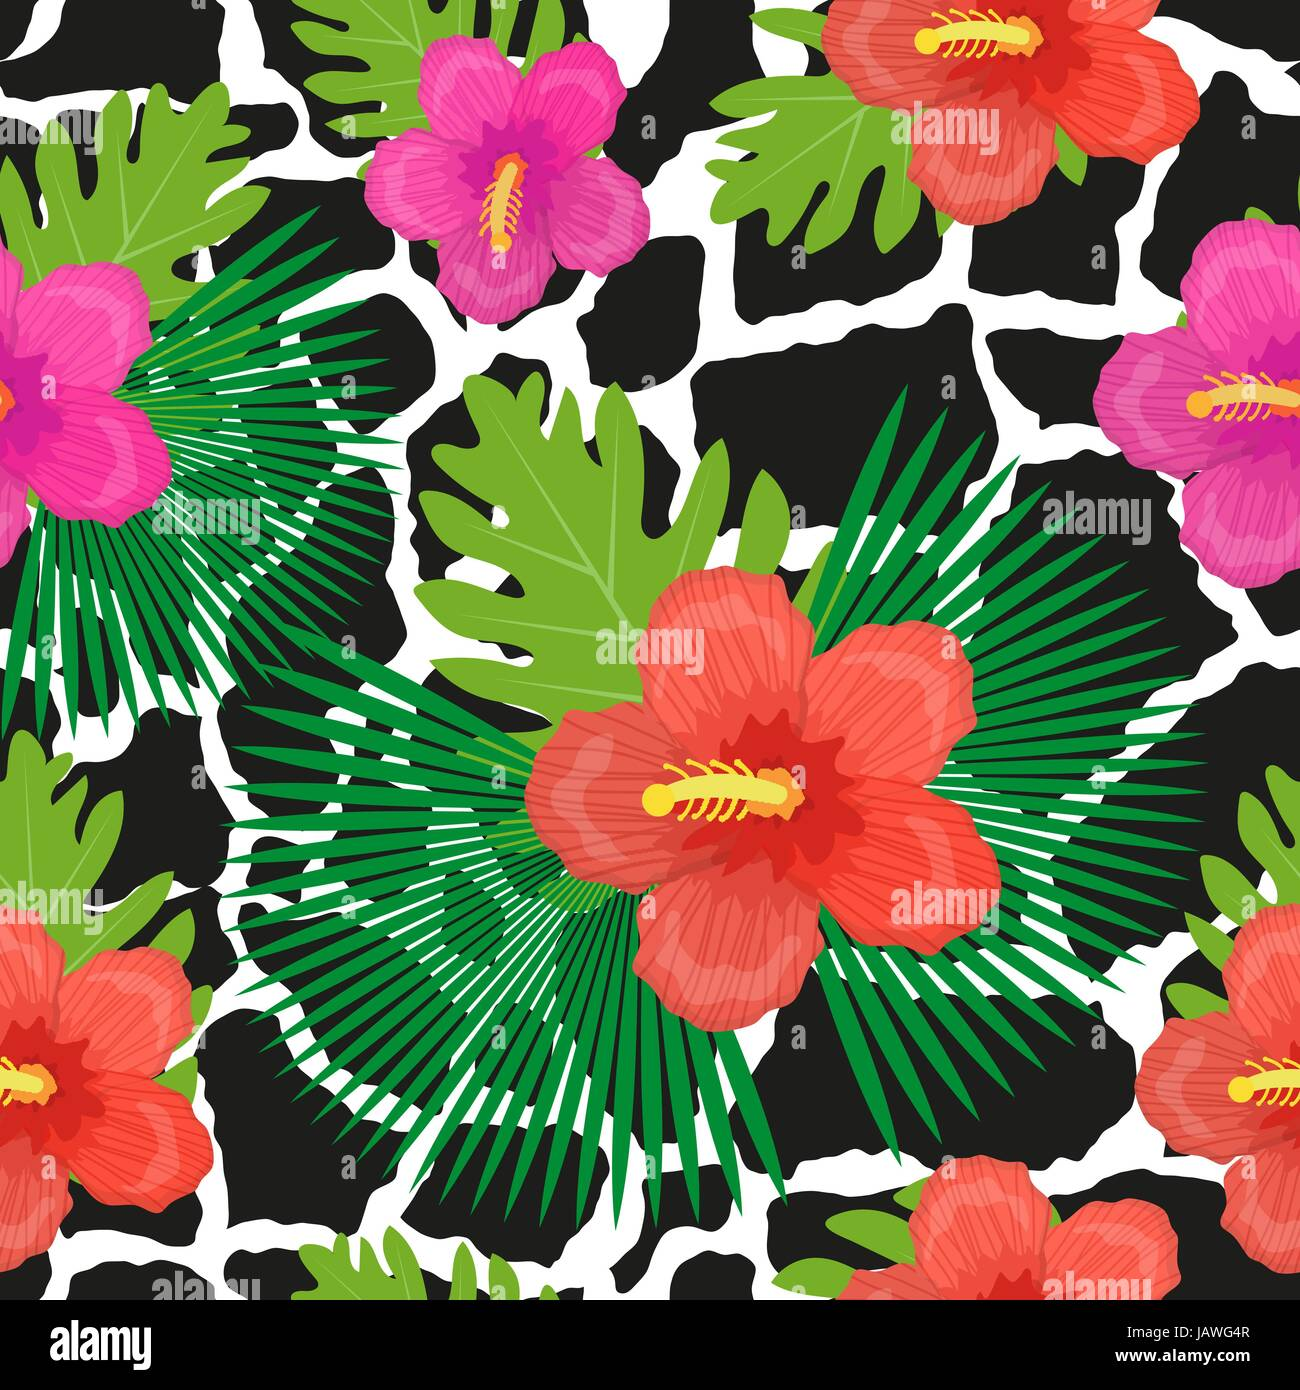 Tropical flowers, plants, leaves and animal skin seamless pattern. Summer Endless floral background. Paradise repeating - Stock Vector